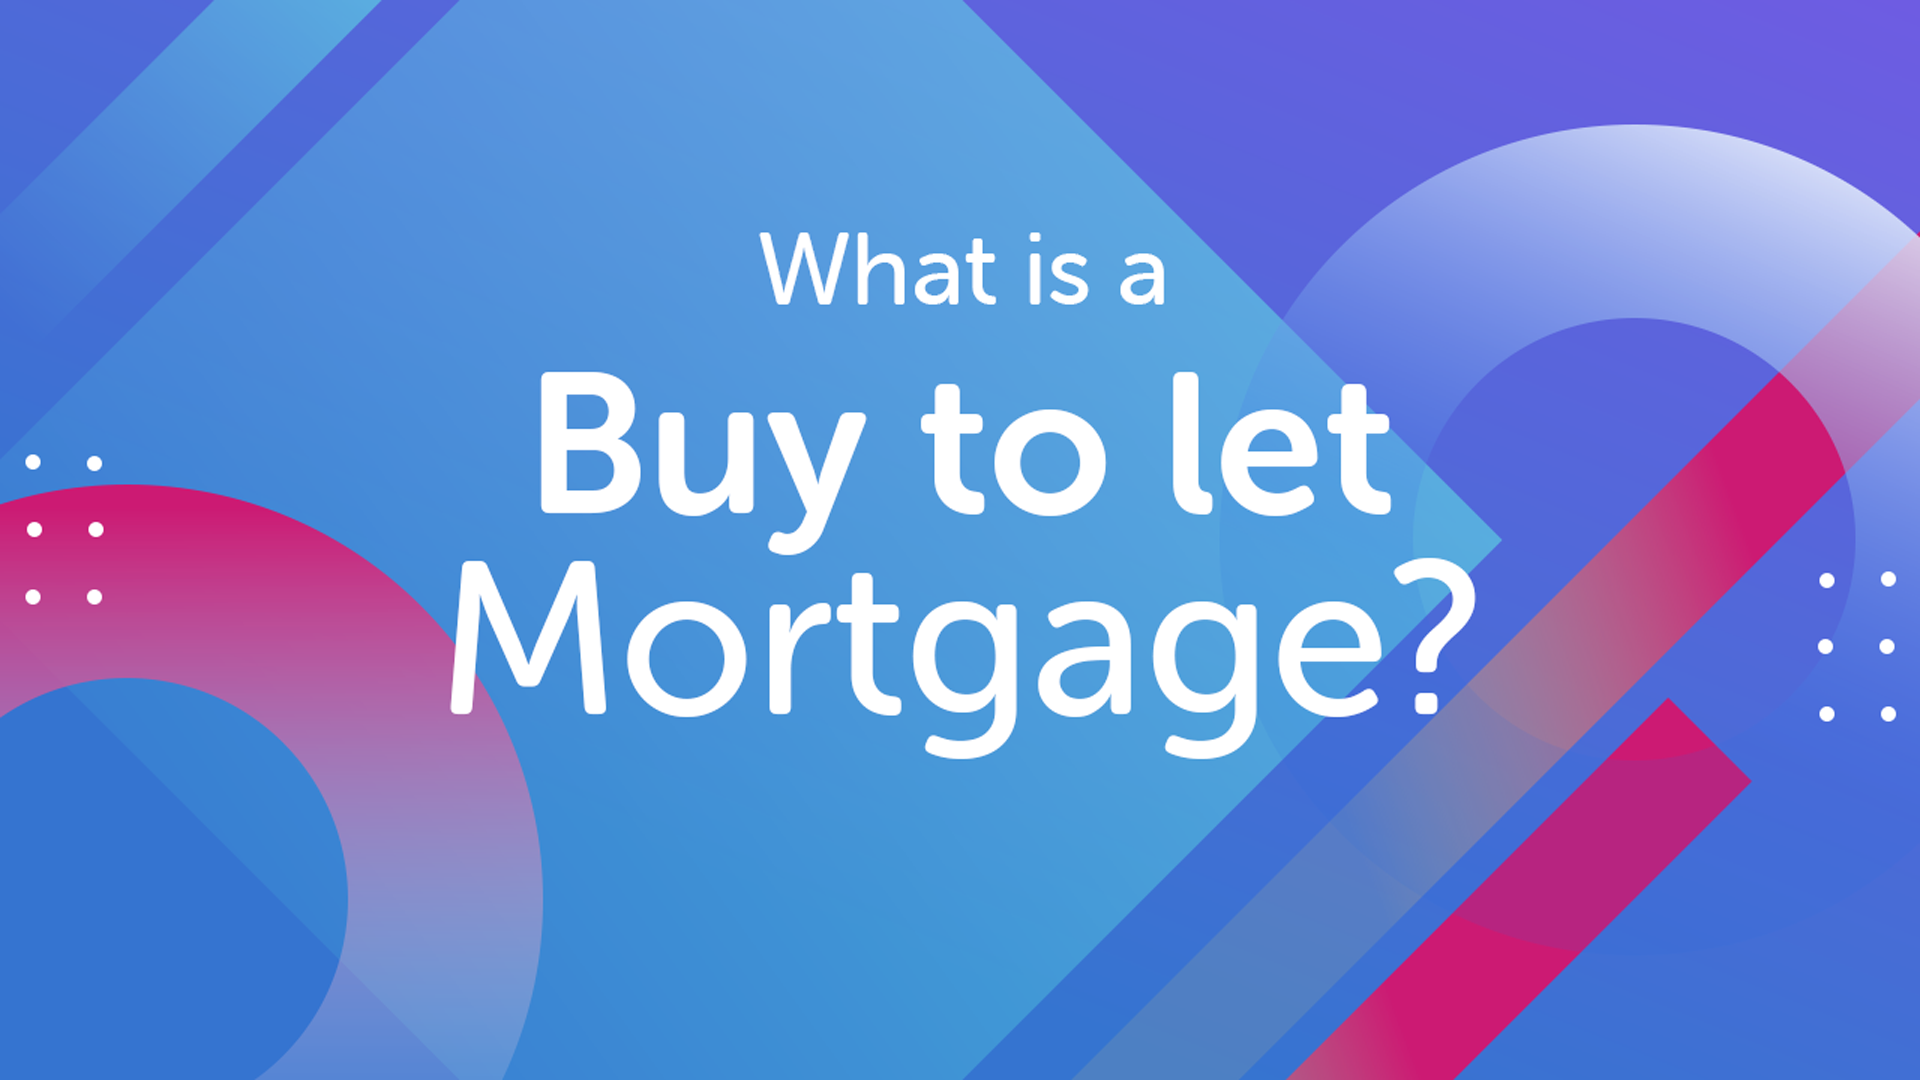 Buy to let mortgages | UK moneyman